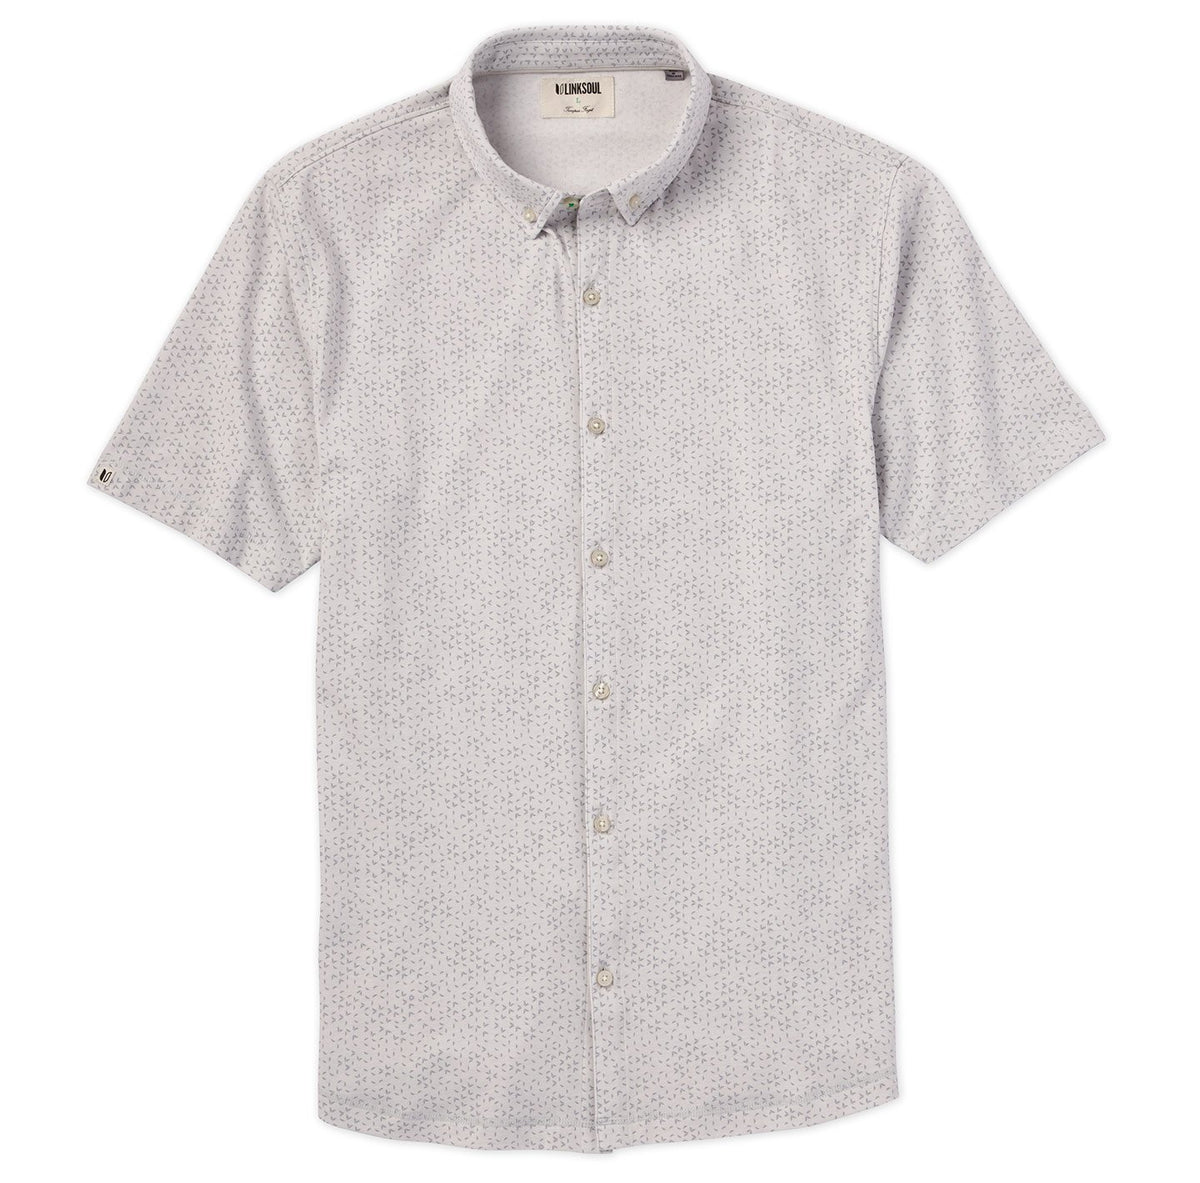 Anza Noise Print Short Sleeve Shirt